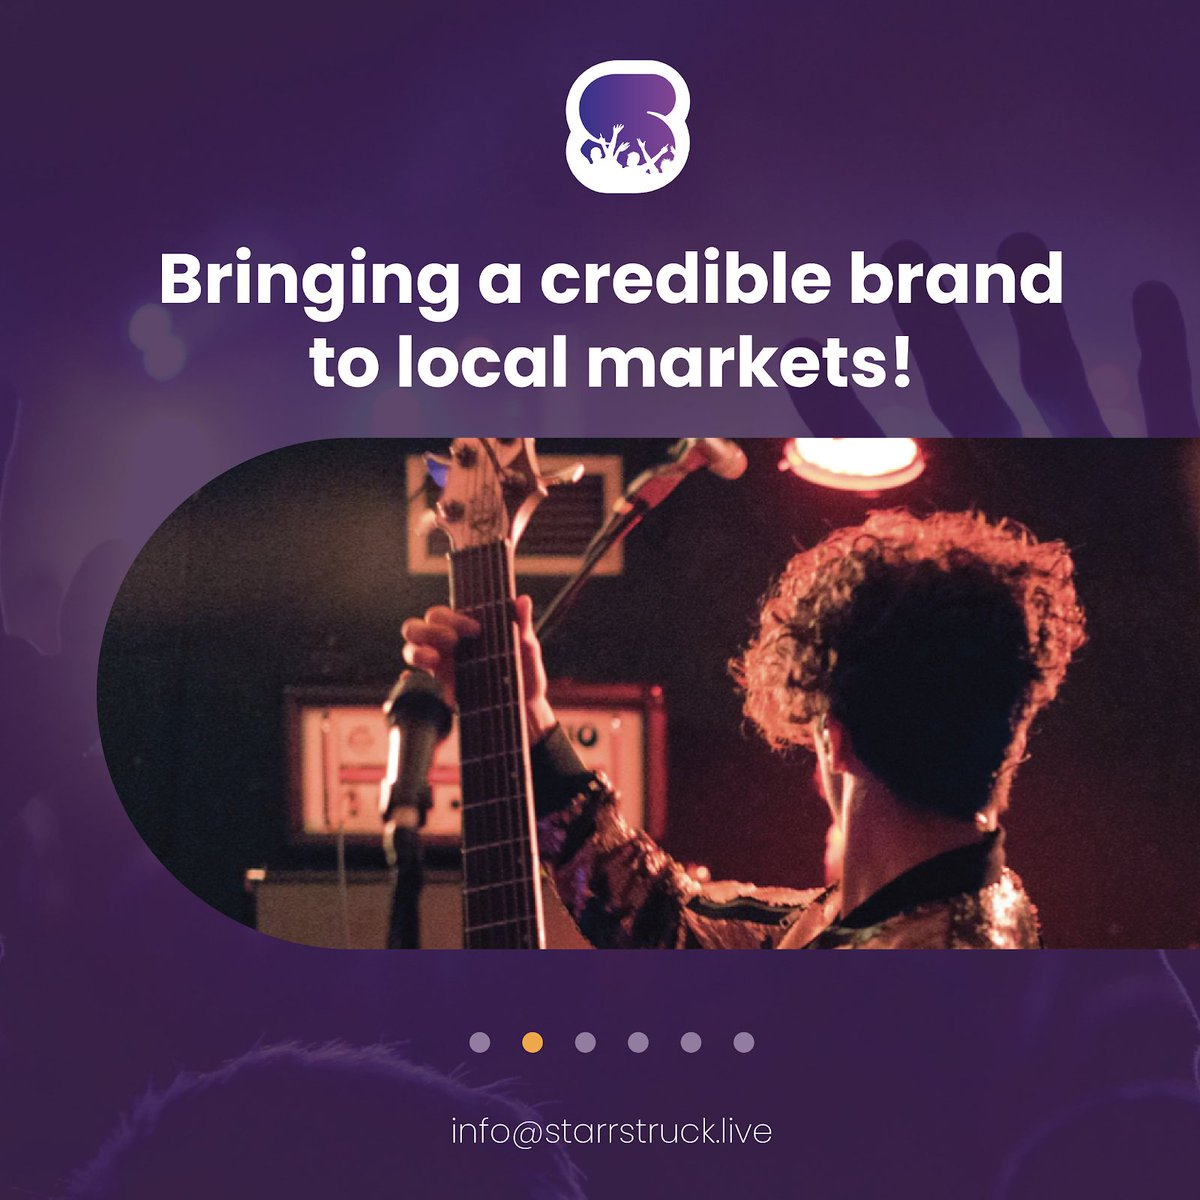 At Starrstruck we strive to achieve excellence by bringing our brand to local markets. Starrstruck is a trustworthy platform that helps performers connect with their audience… no matter the circumstances.  #starrstruck #events #performers #artists #ecommerce #production https://t.co/lAqXCZ1qzA